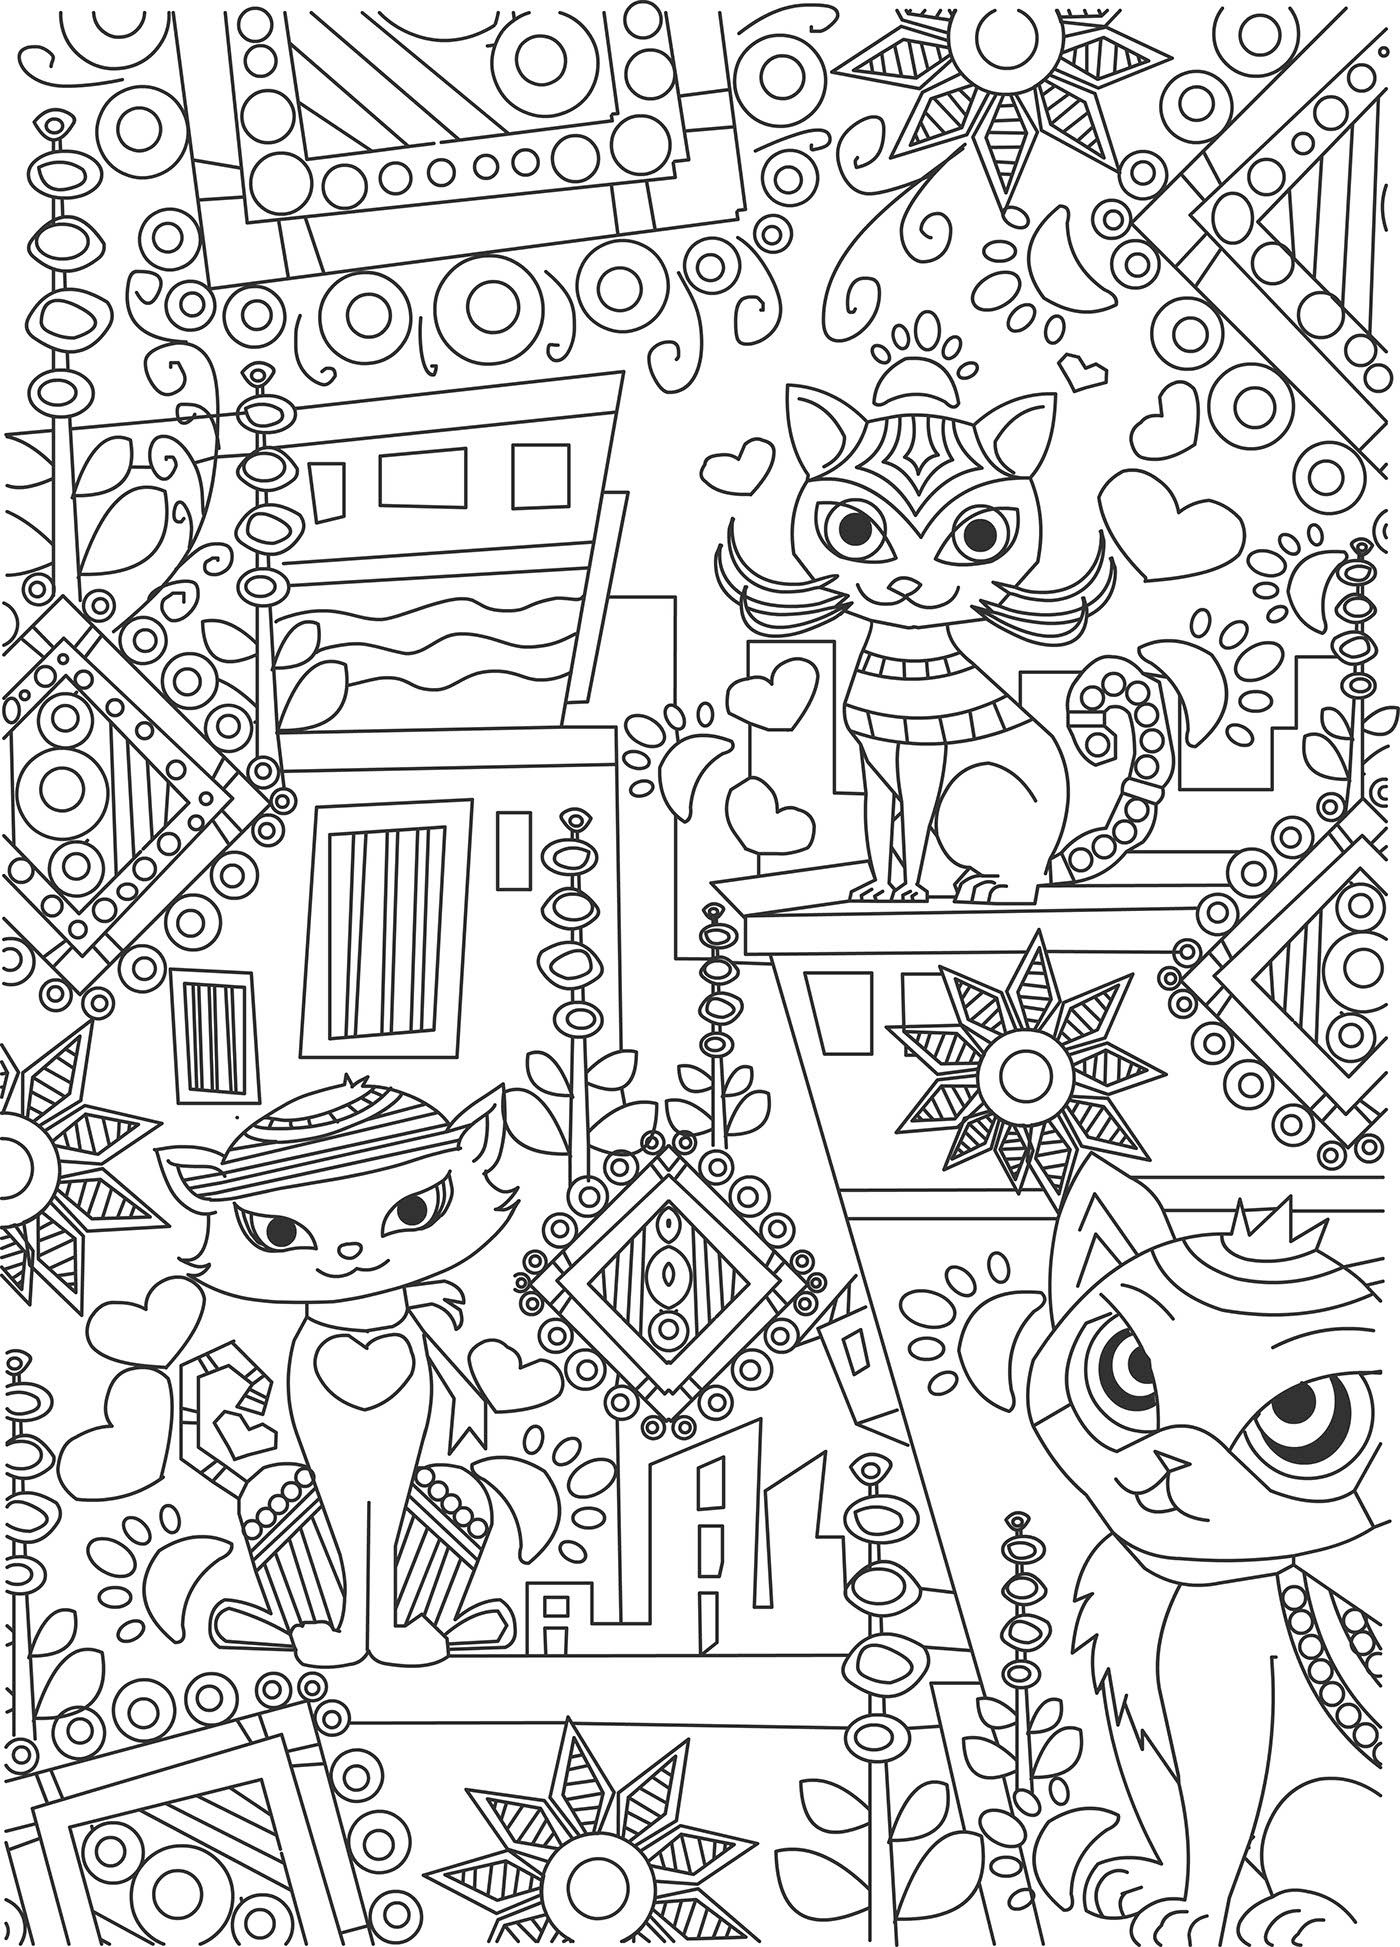 90 Ace Coloring Pages For Big Kids Large Book Letter D Fish Cool ...   1947x1400